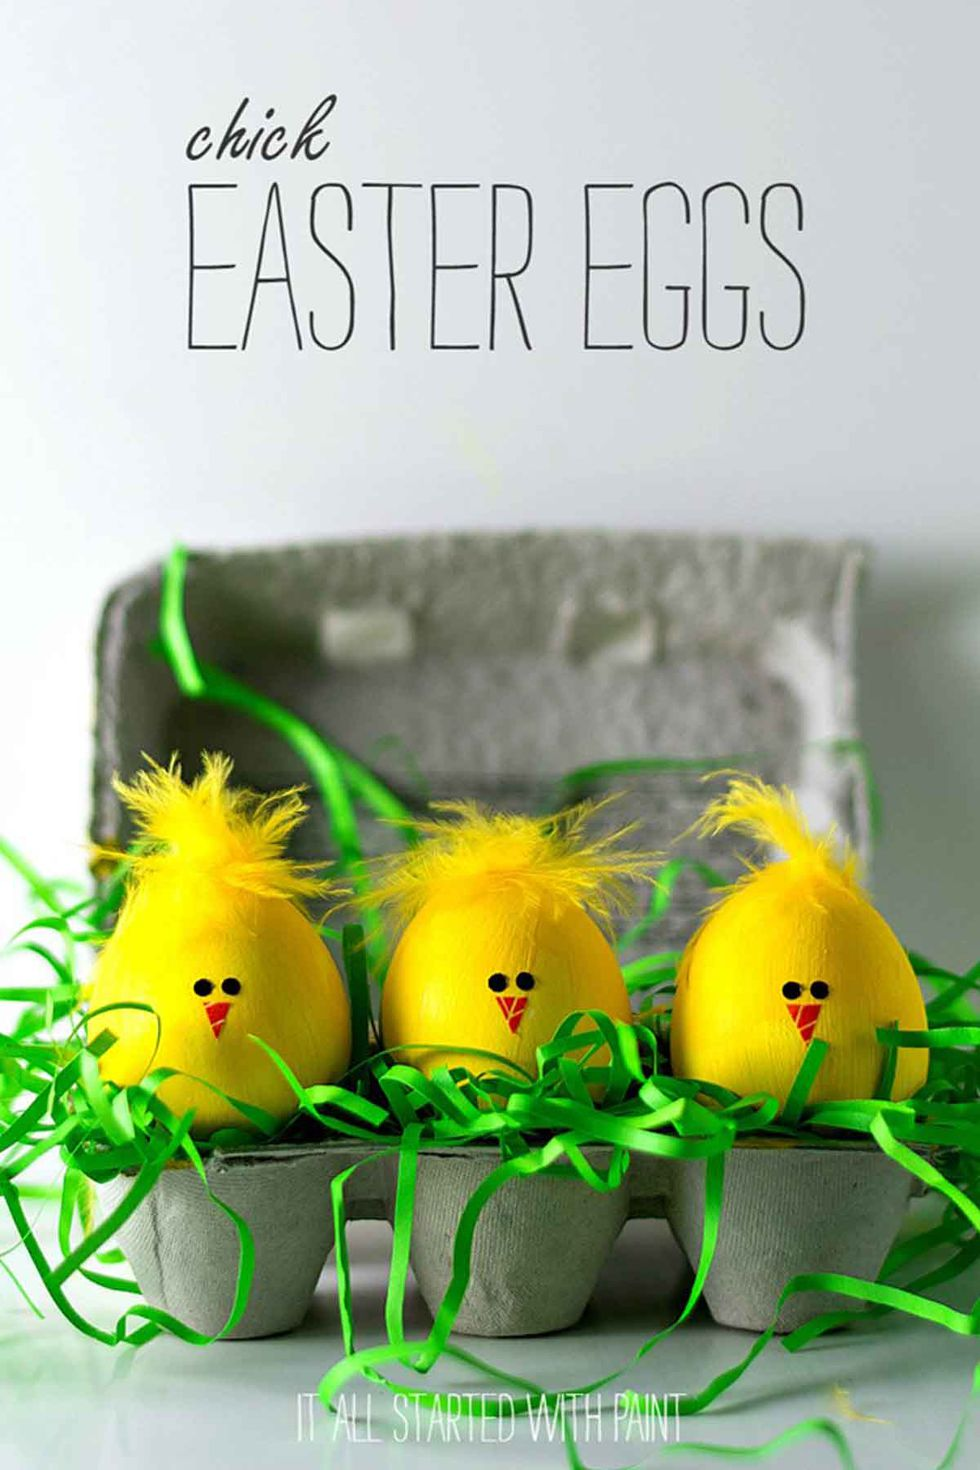 chick-easter-eggs